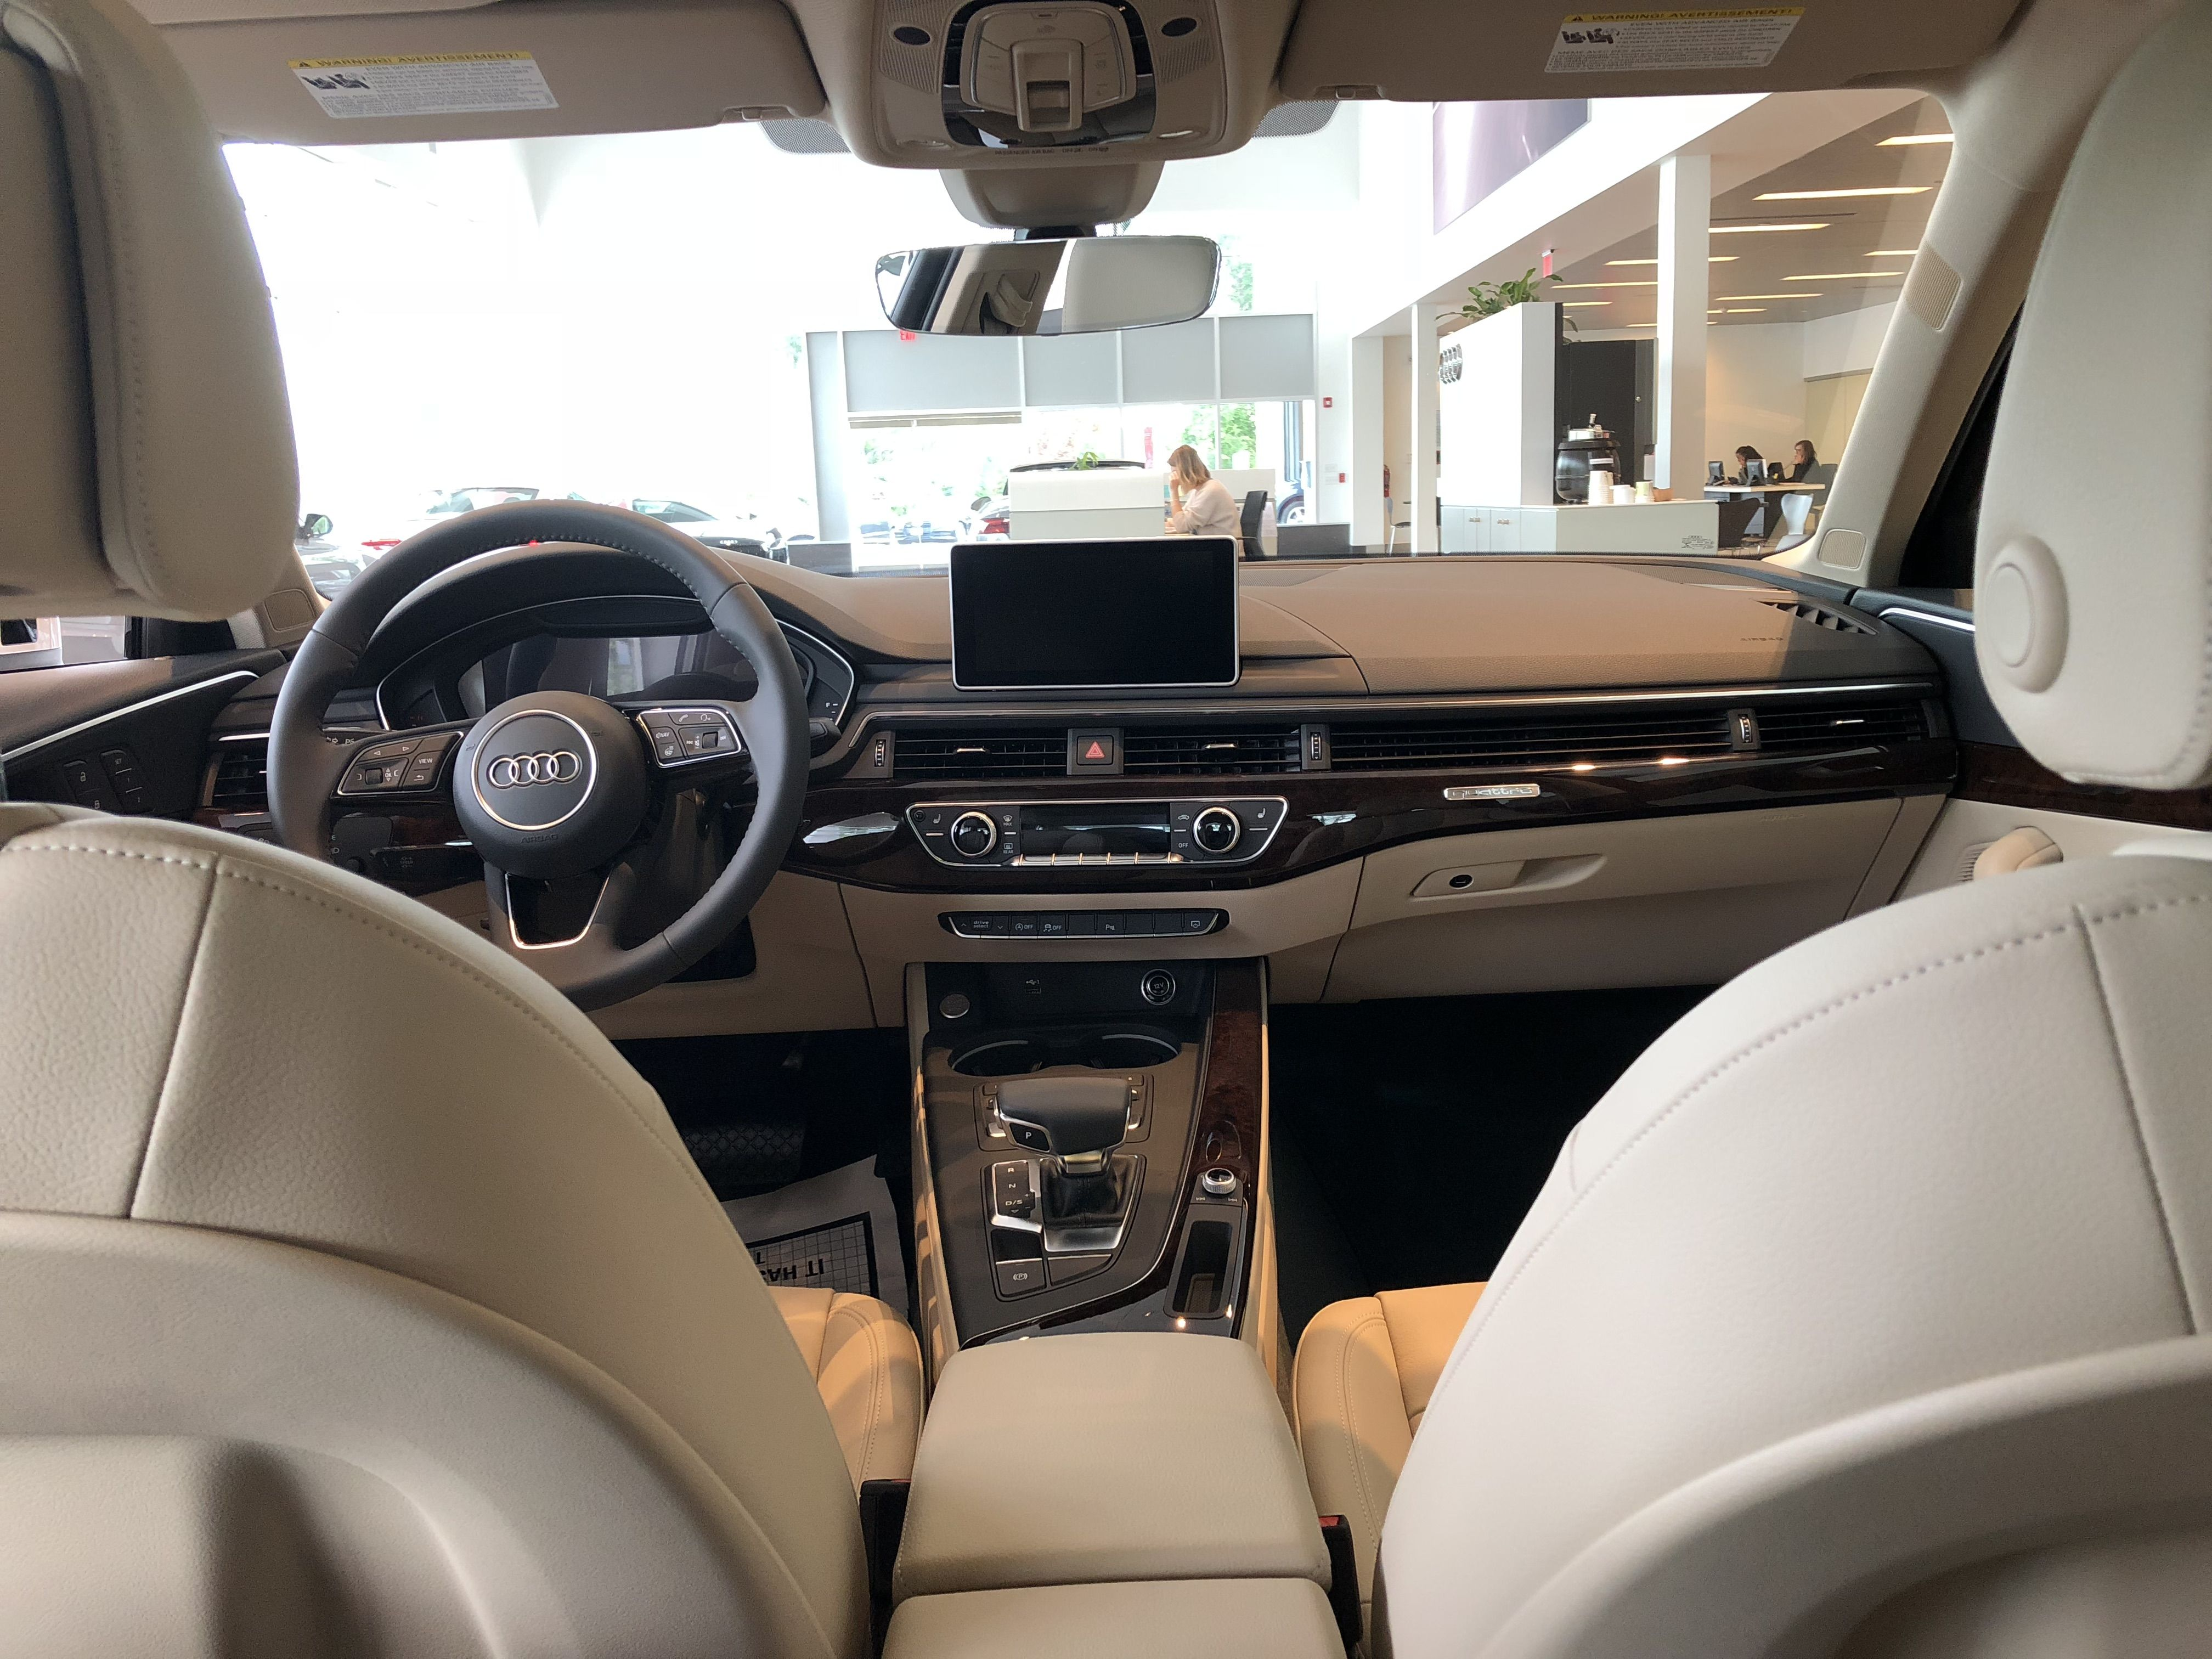 Rear Seat View Of Front Cockpit Of The 2018 Audi A4 In Tan Leather Vehicle Located At Audi Of Bridgewater Nj Audi Interior Audi Dealership Used Luxury Cars